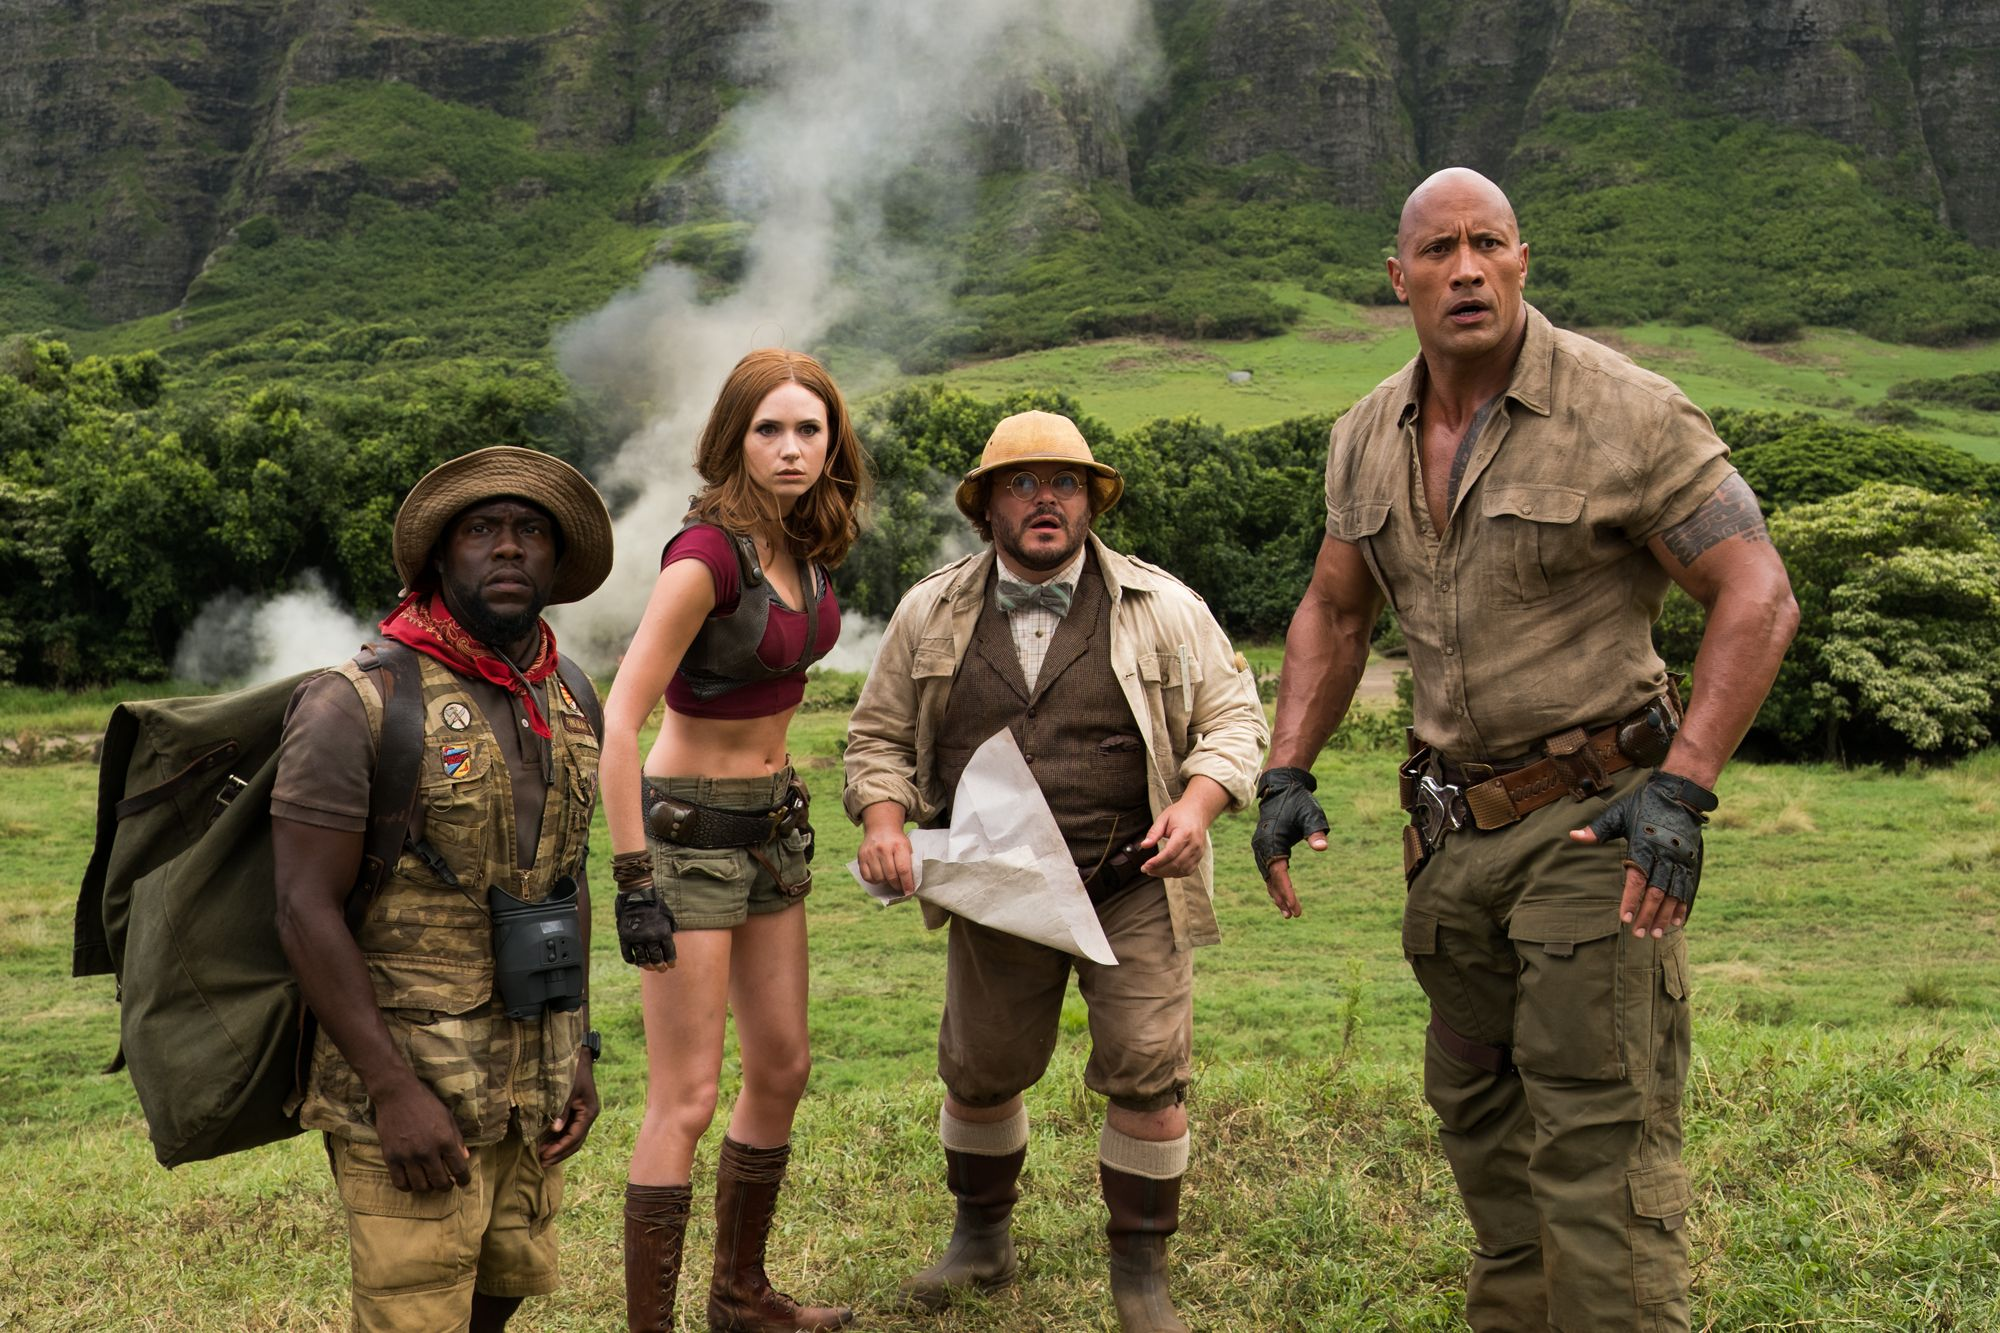 'Jumanji: Welcome to the Jungle' review: Dwayne Johnson leads silly fun